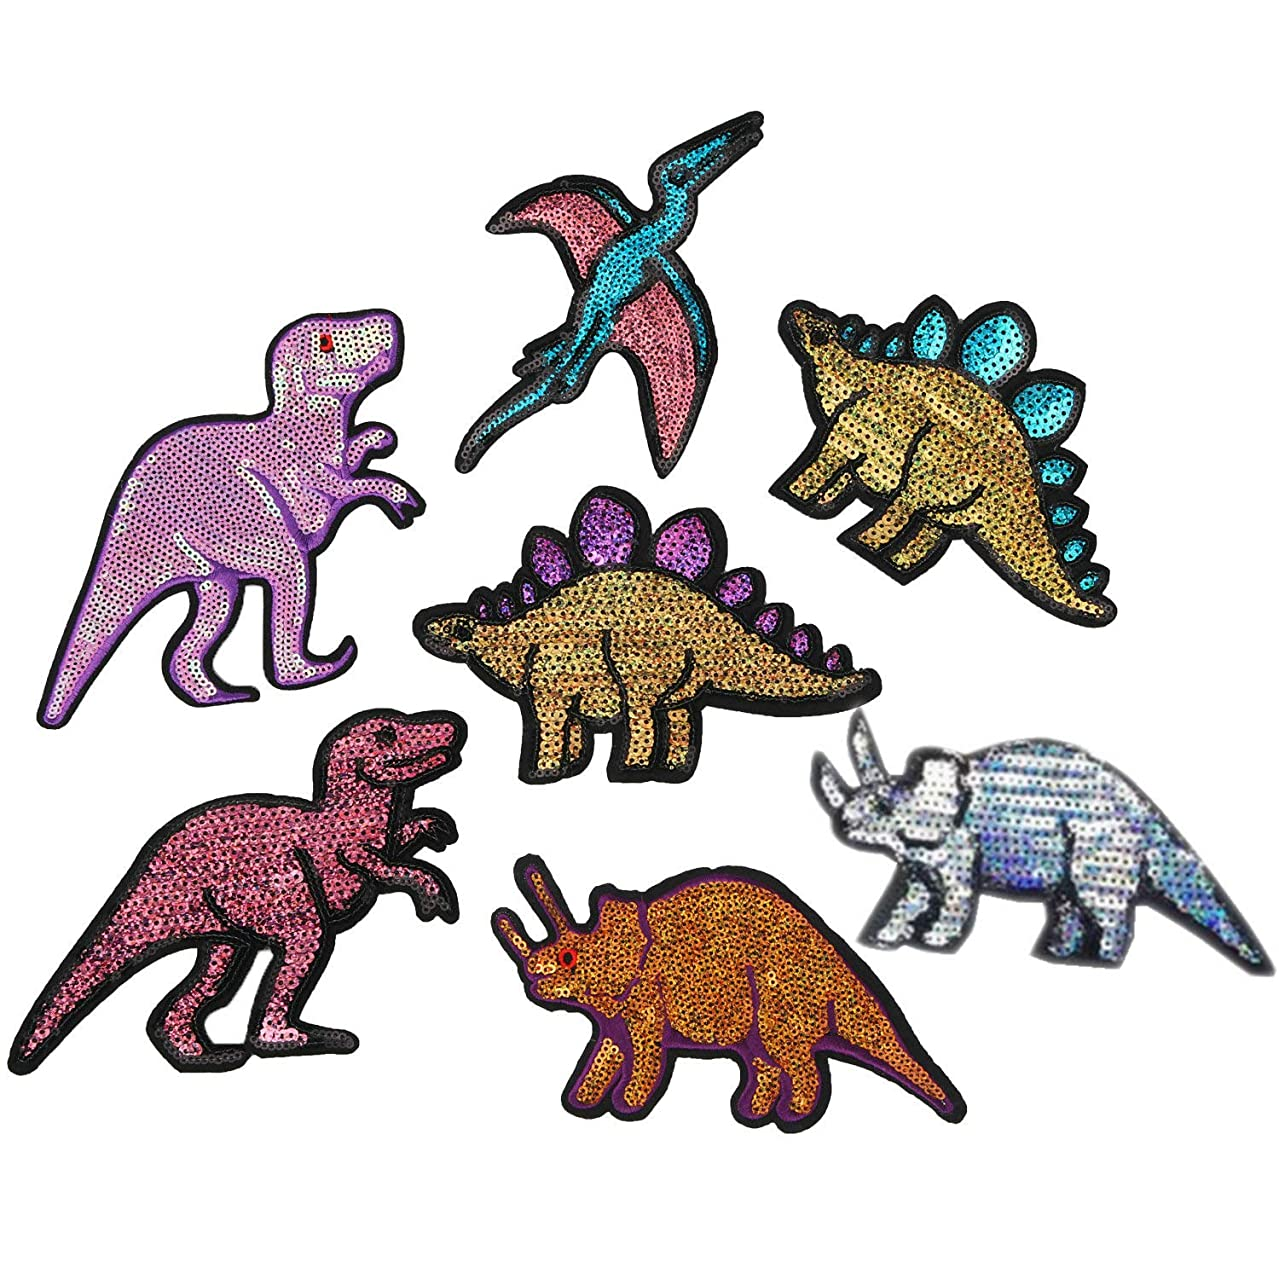 7 Pcs Sequins Animal Dinosaurs Stickers Embroidered Sewing On Patch for Jeans T-Shirt Coat Applique DIY Accessory